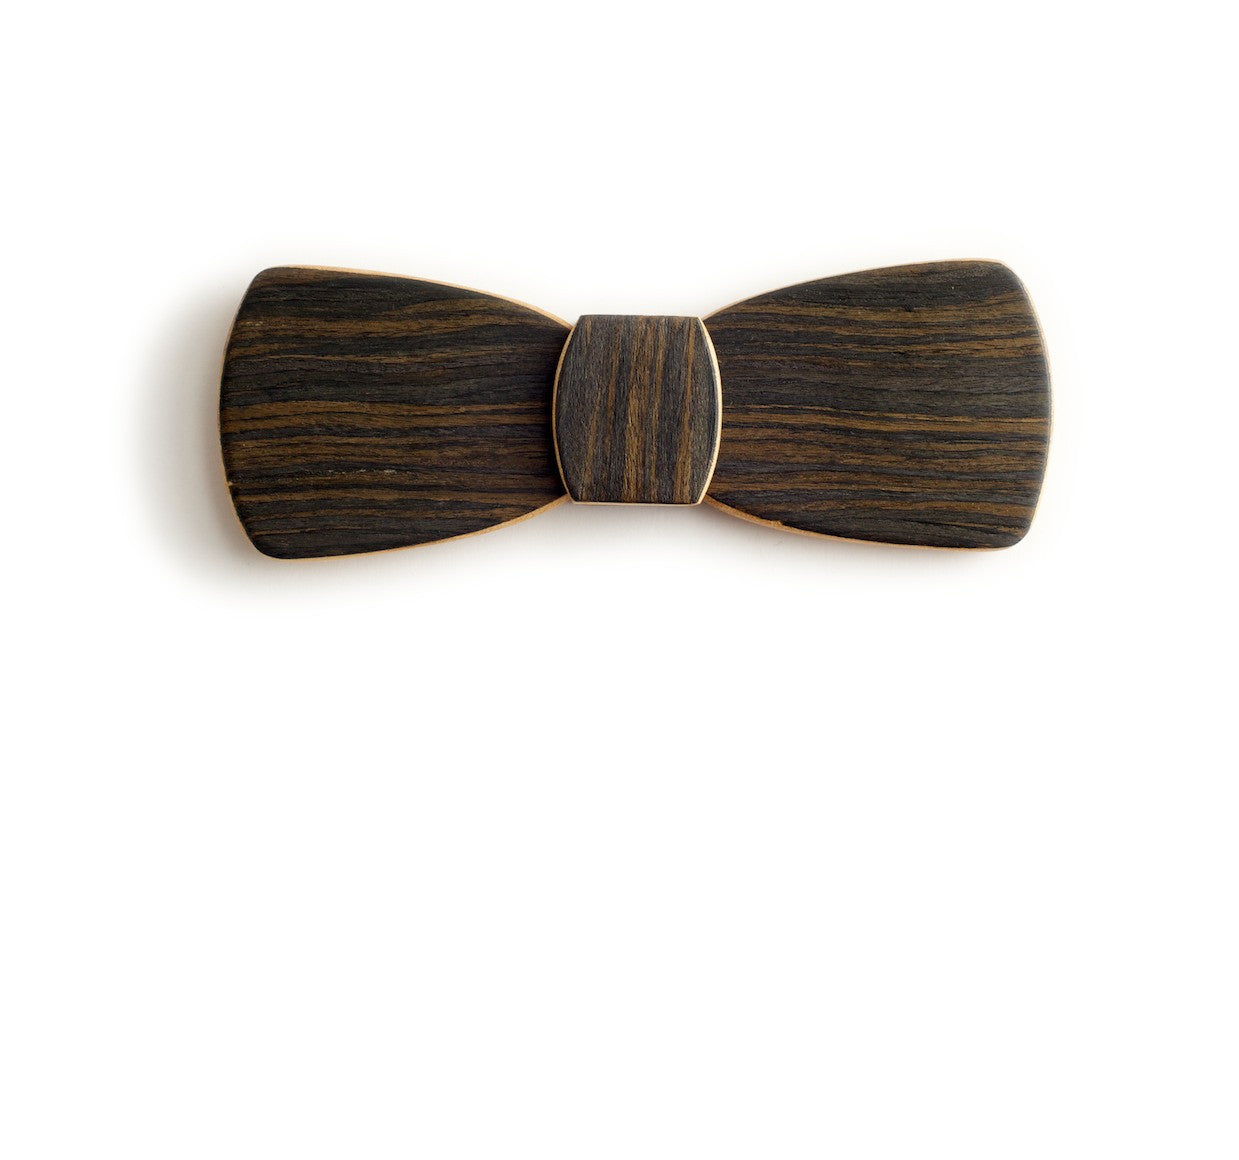 Batwing Wood Bow Tie Night Drive wooden tie company